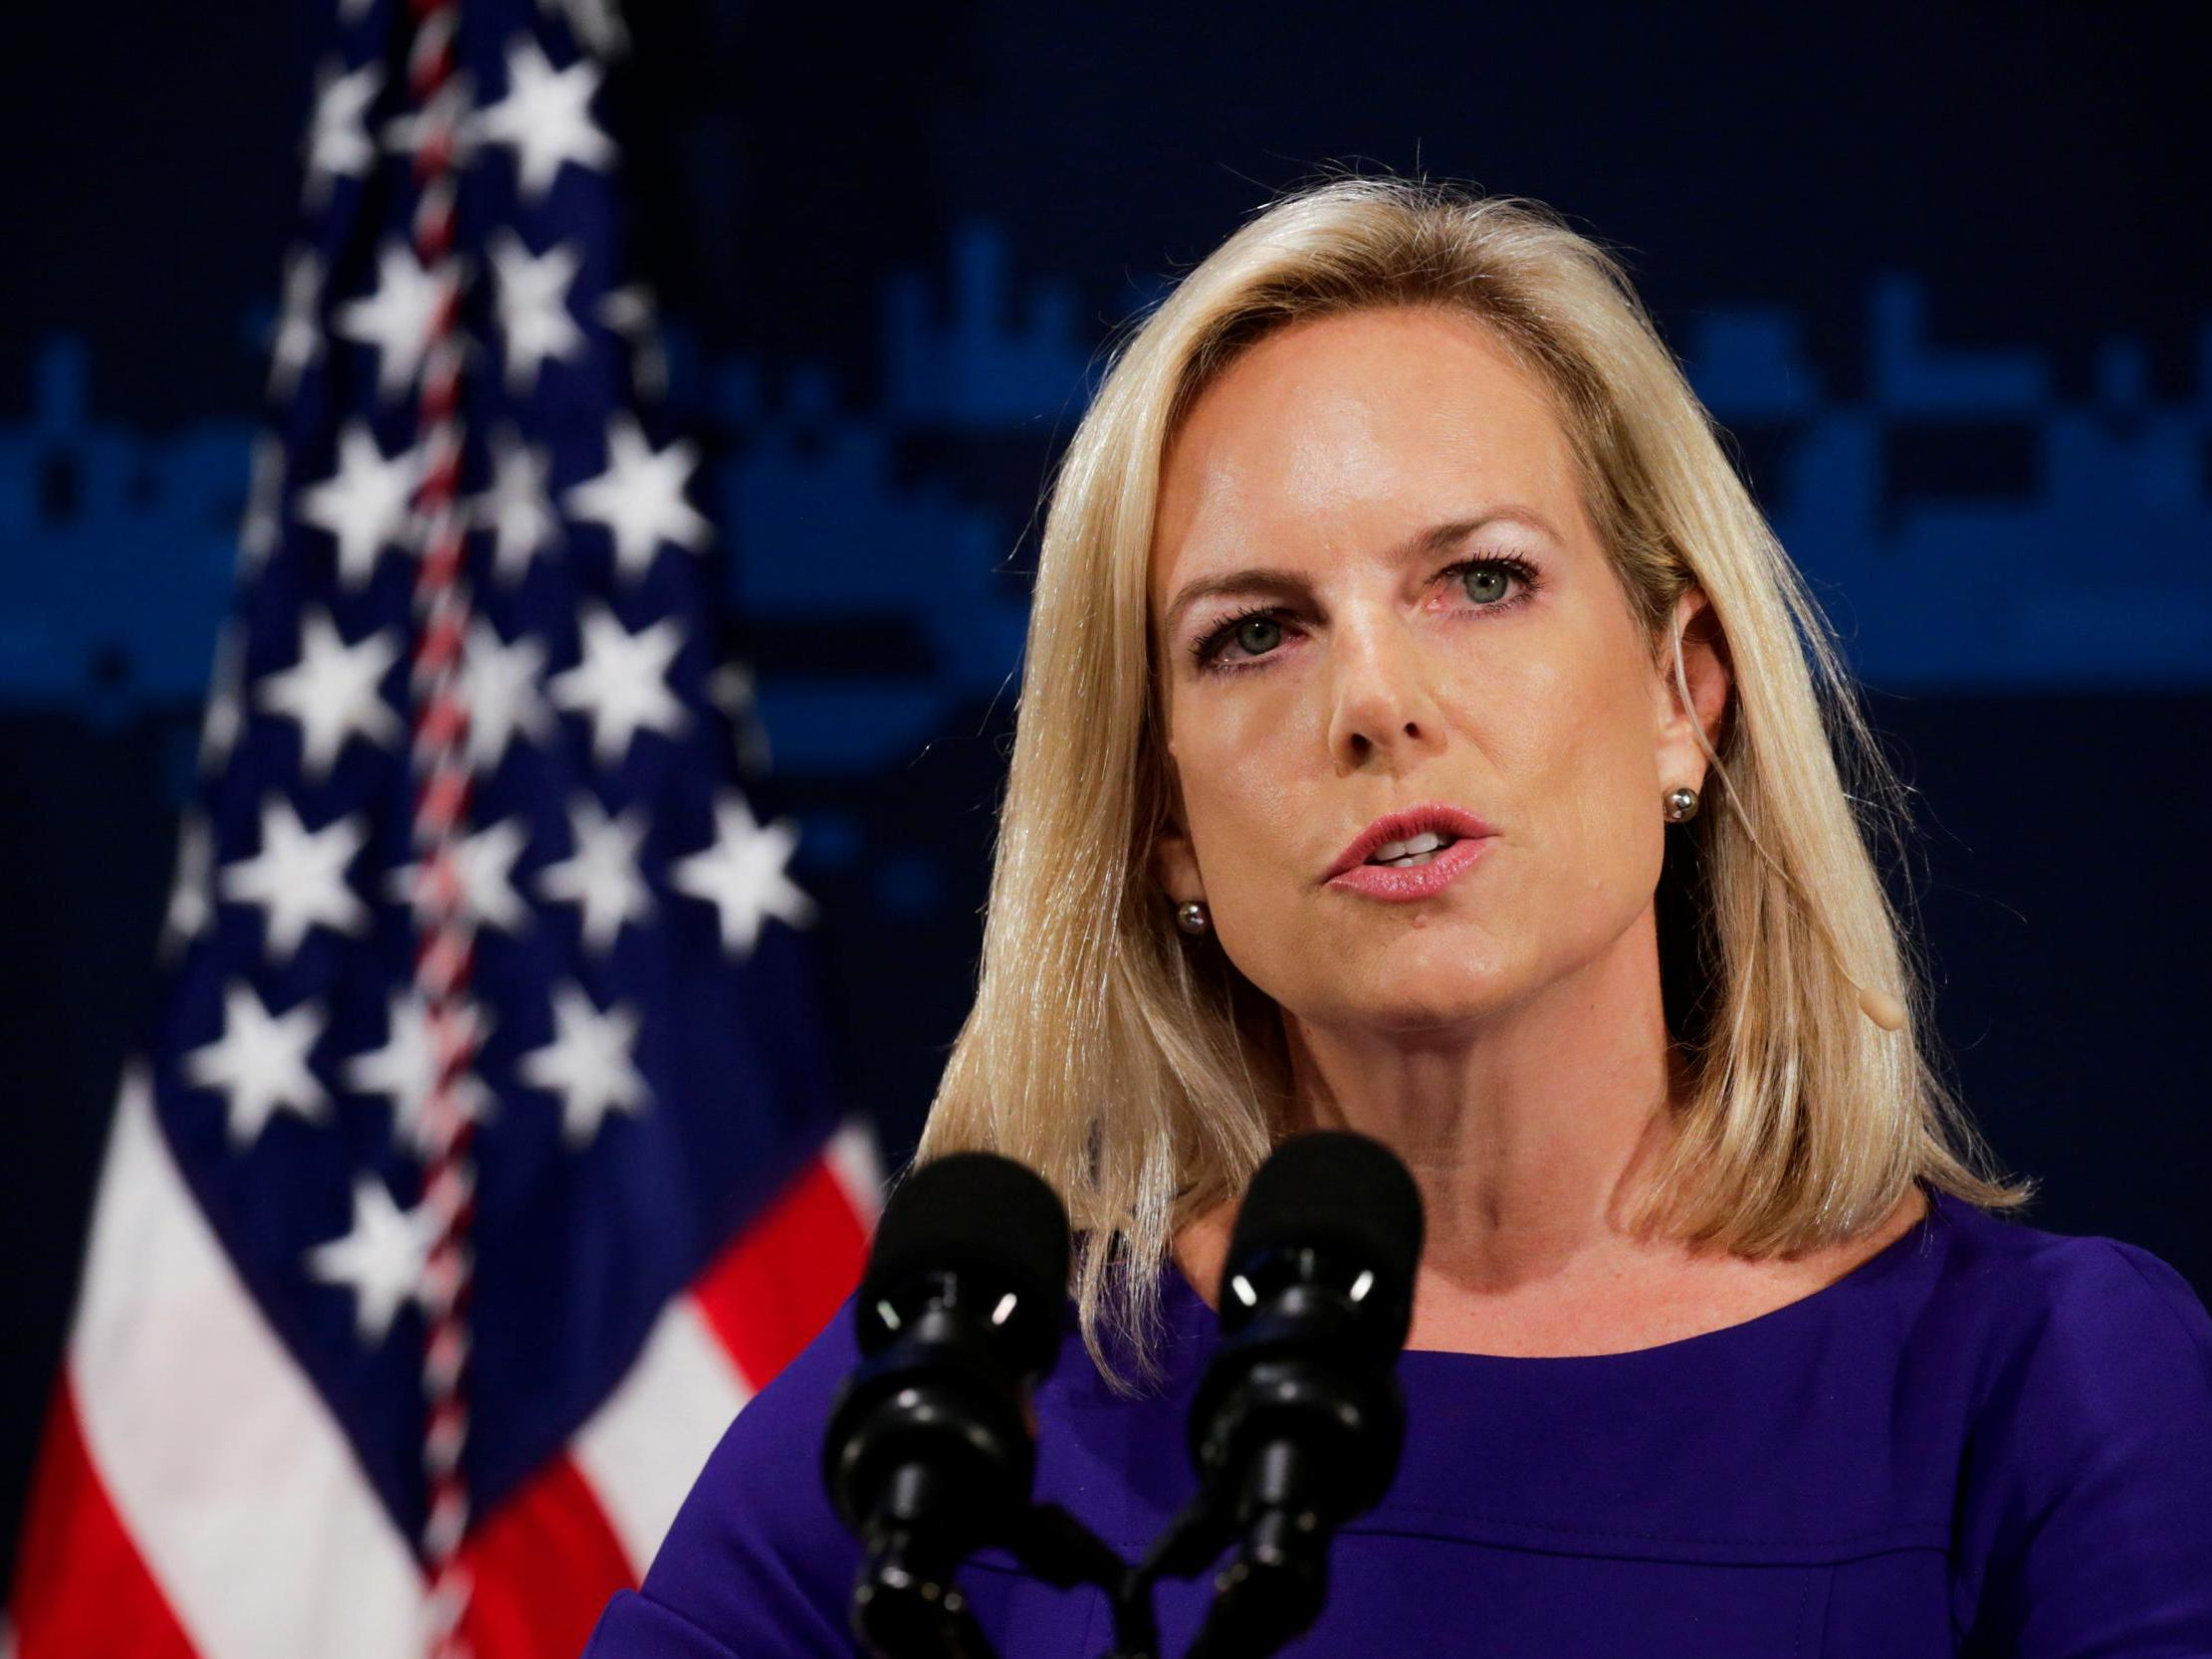 If Trump fires Kirstjen Nielsen, Michelle Obama may be our only hope